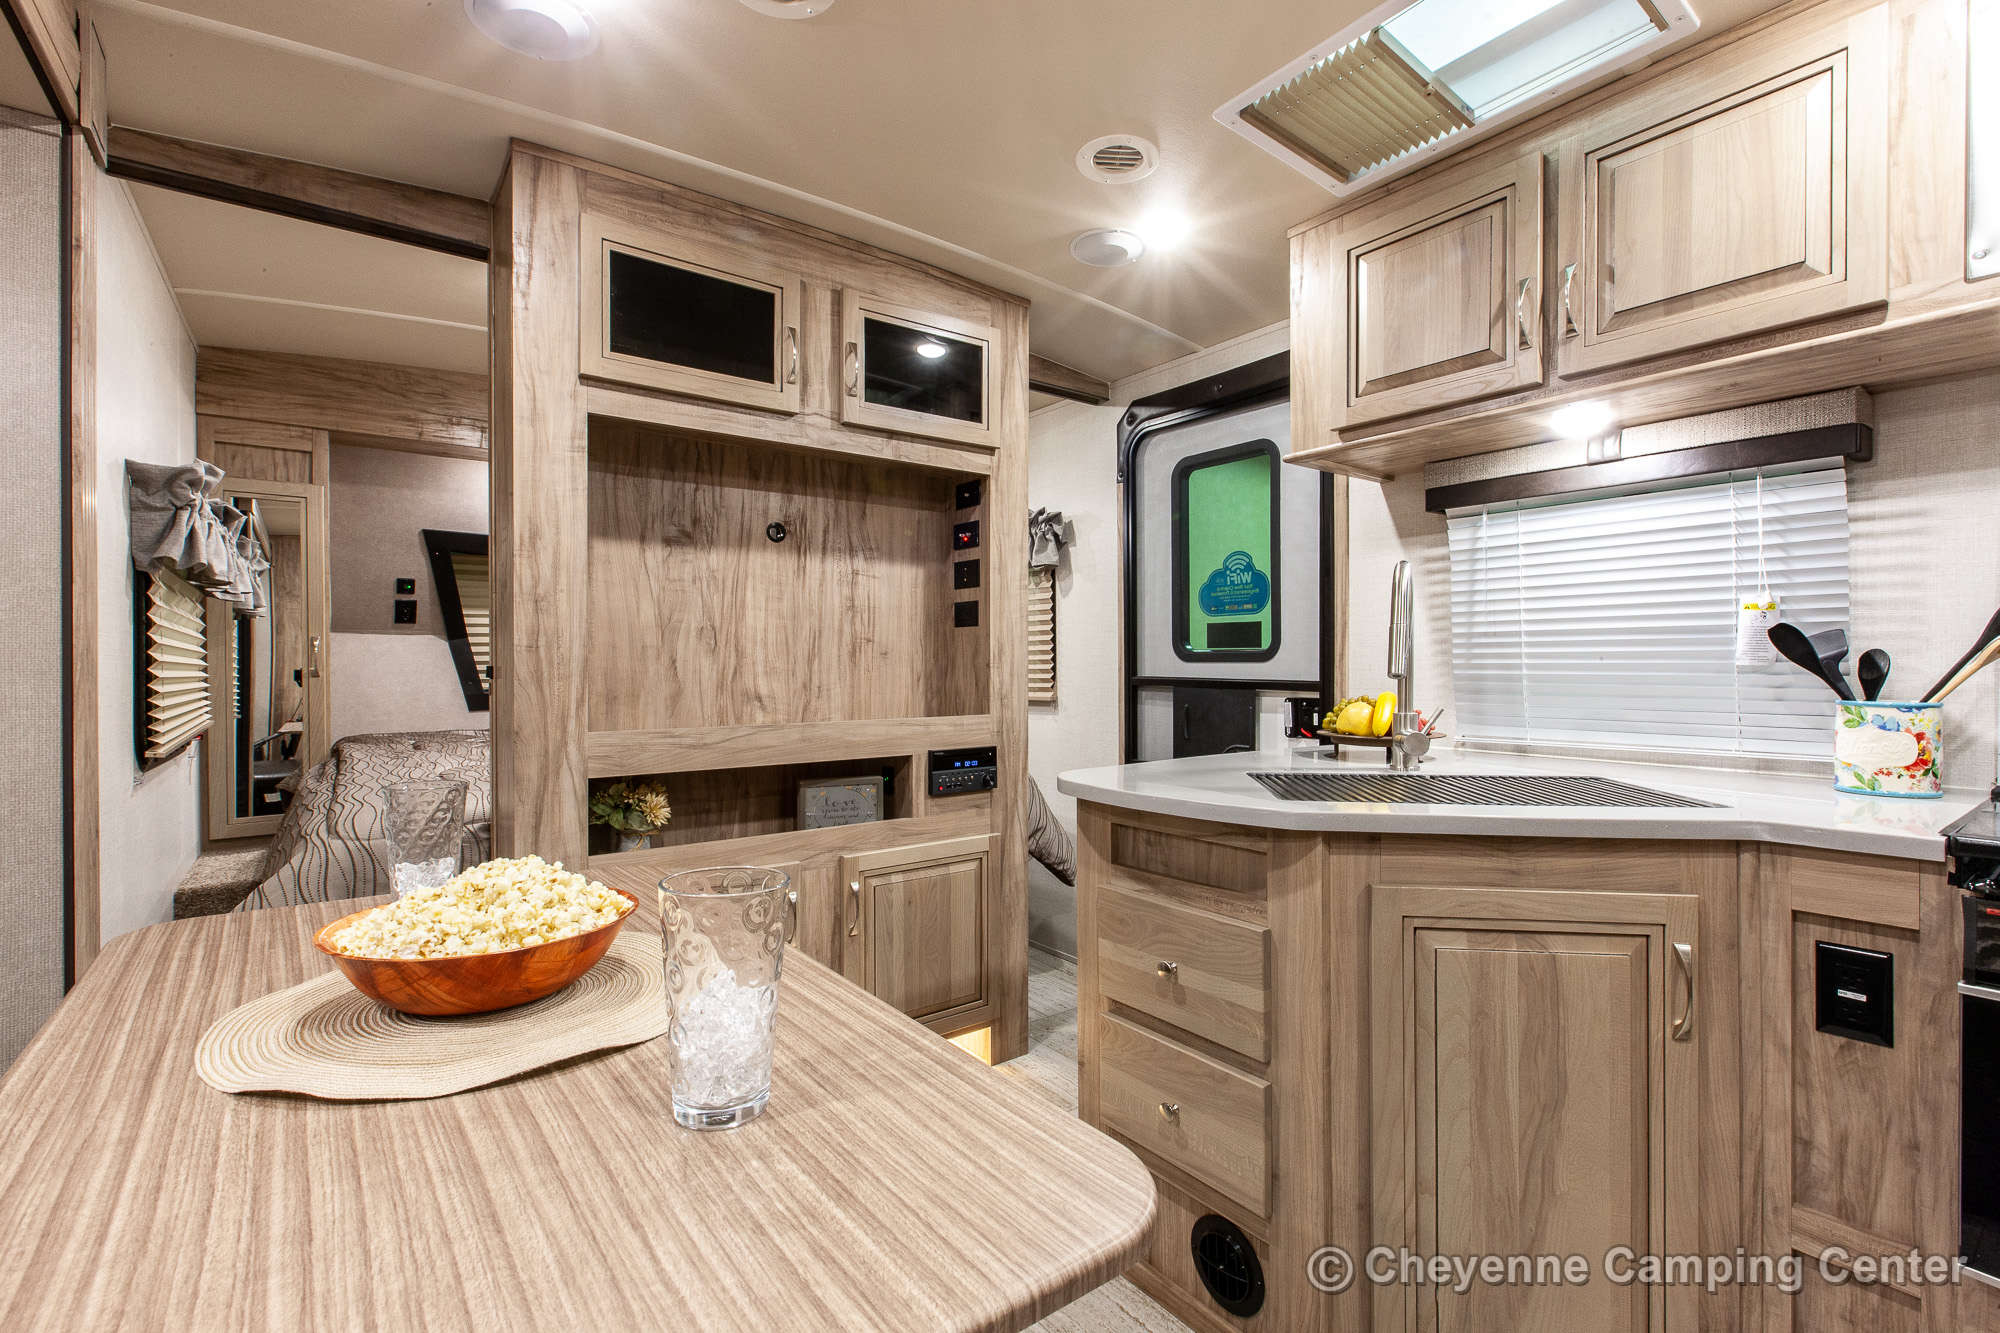 2021 Palomino SolAire Ultra Lite 240BHS Bunkhouse Travel Trailer Interior Image